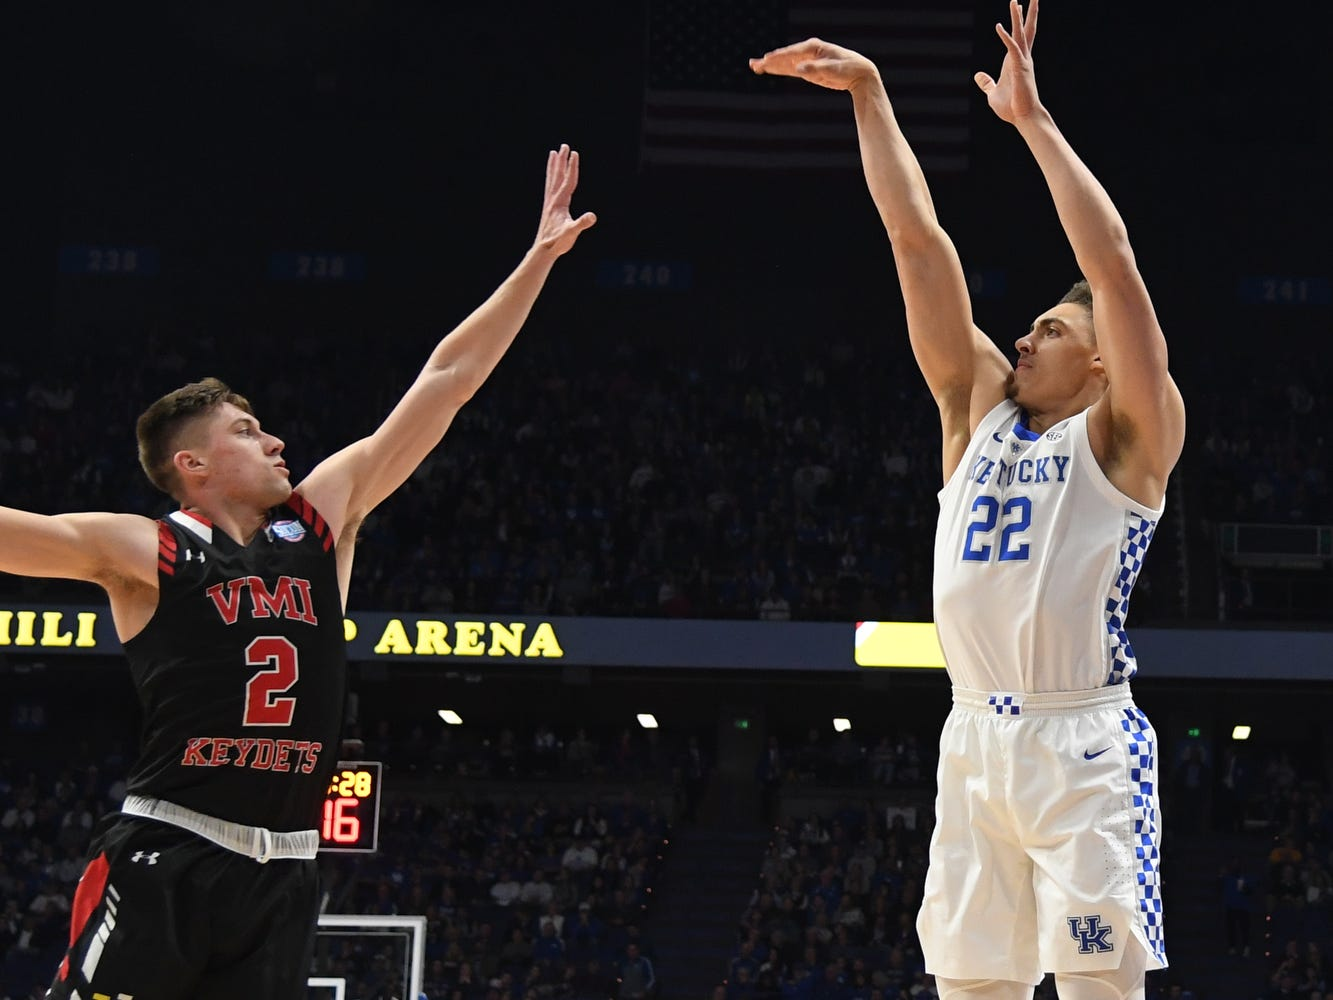 UK F Reid Travis shoots the ball during the University of Kentucky mens basketball game against VMI at Rupp Arena in Lexington, Kentucky on Sunday, November 18, 2018.